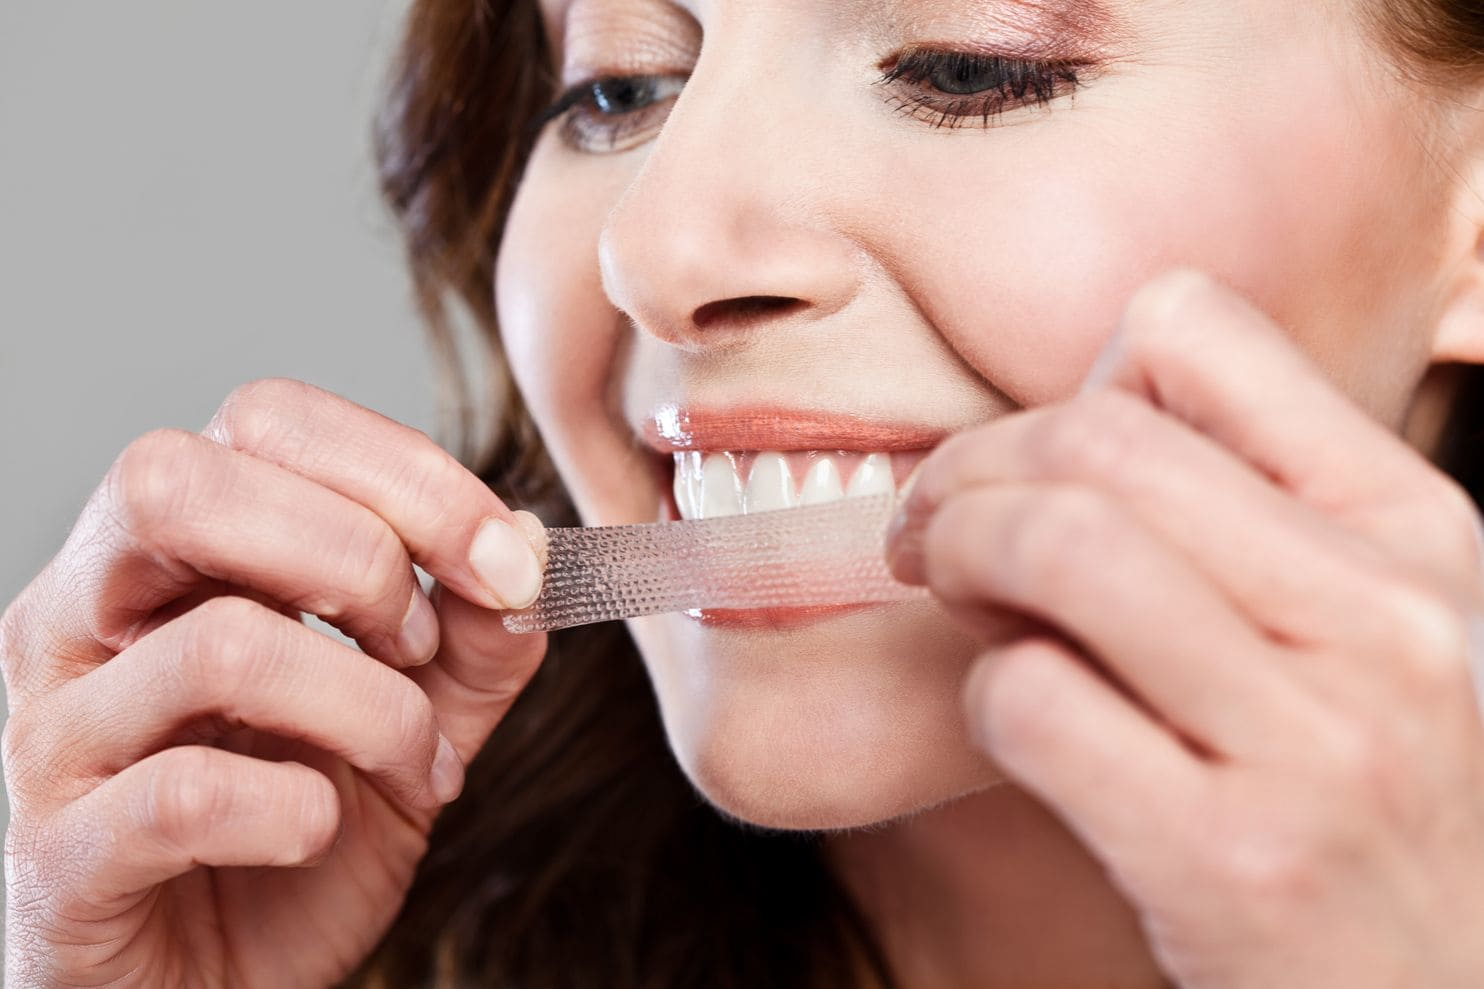 A woman prepares to place a whitening strip on her teeth.